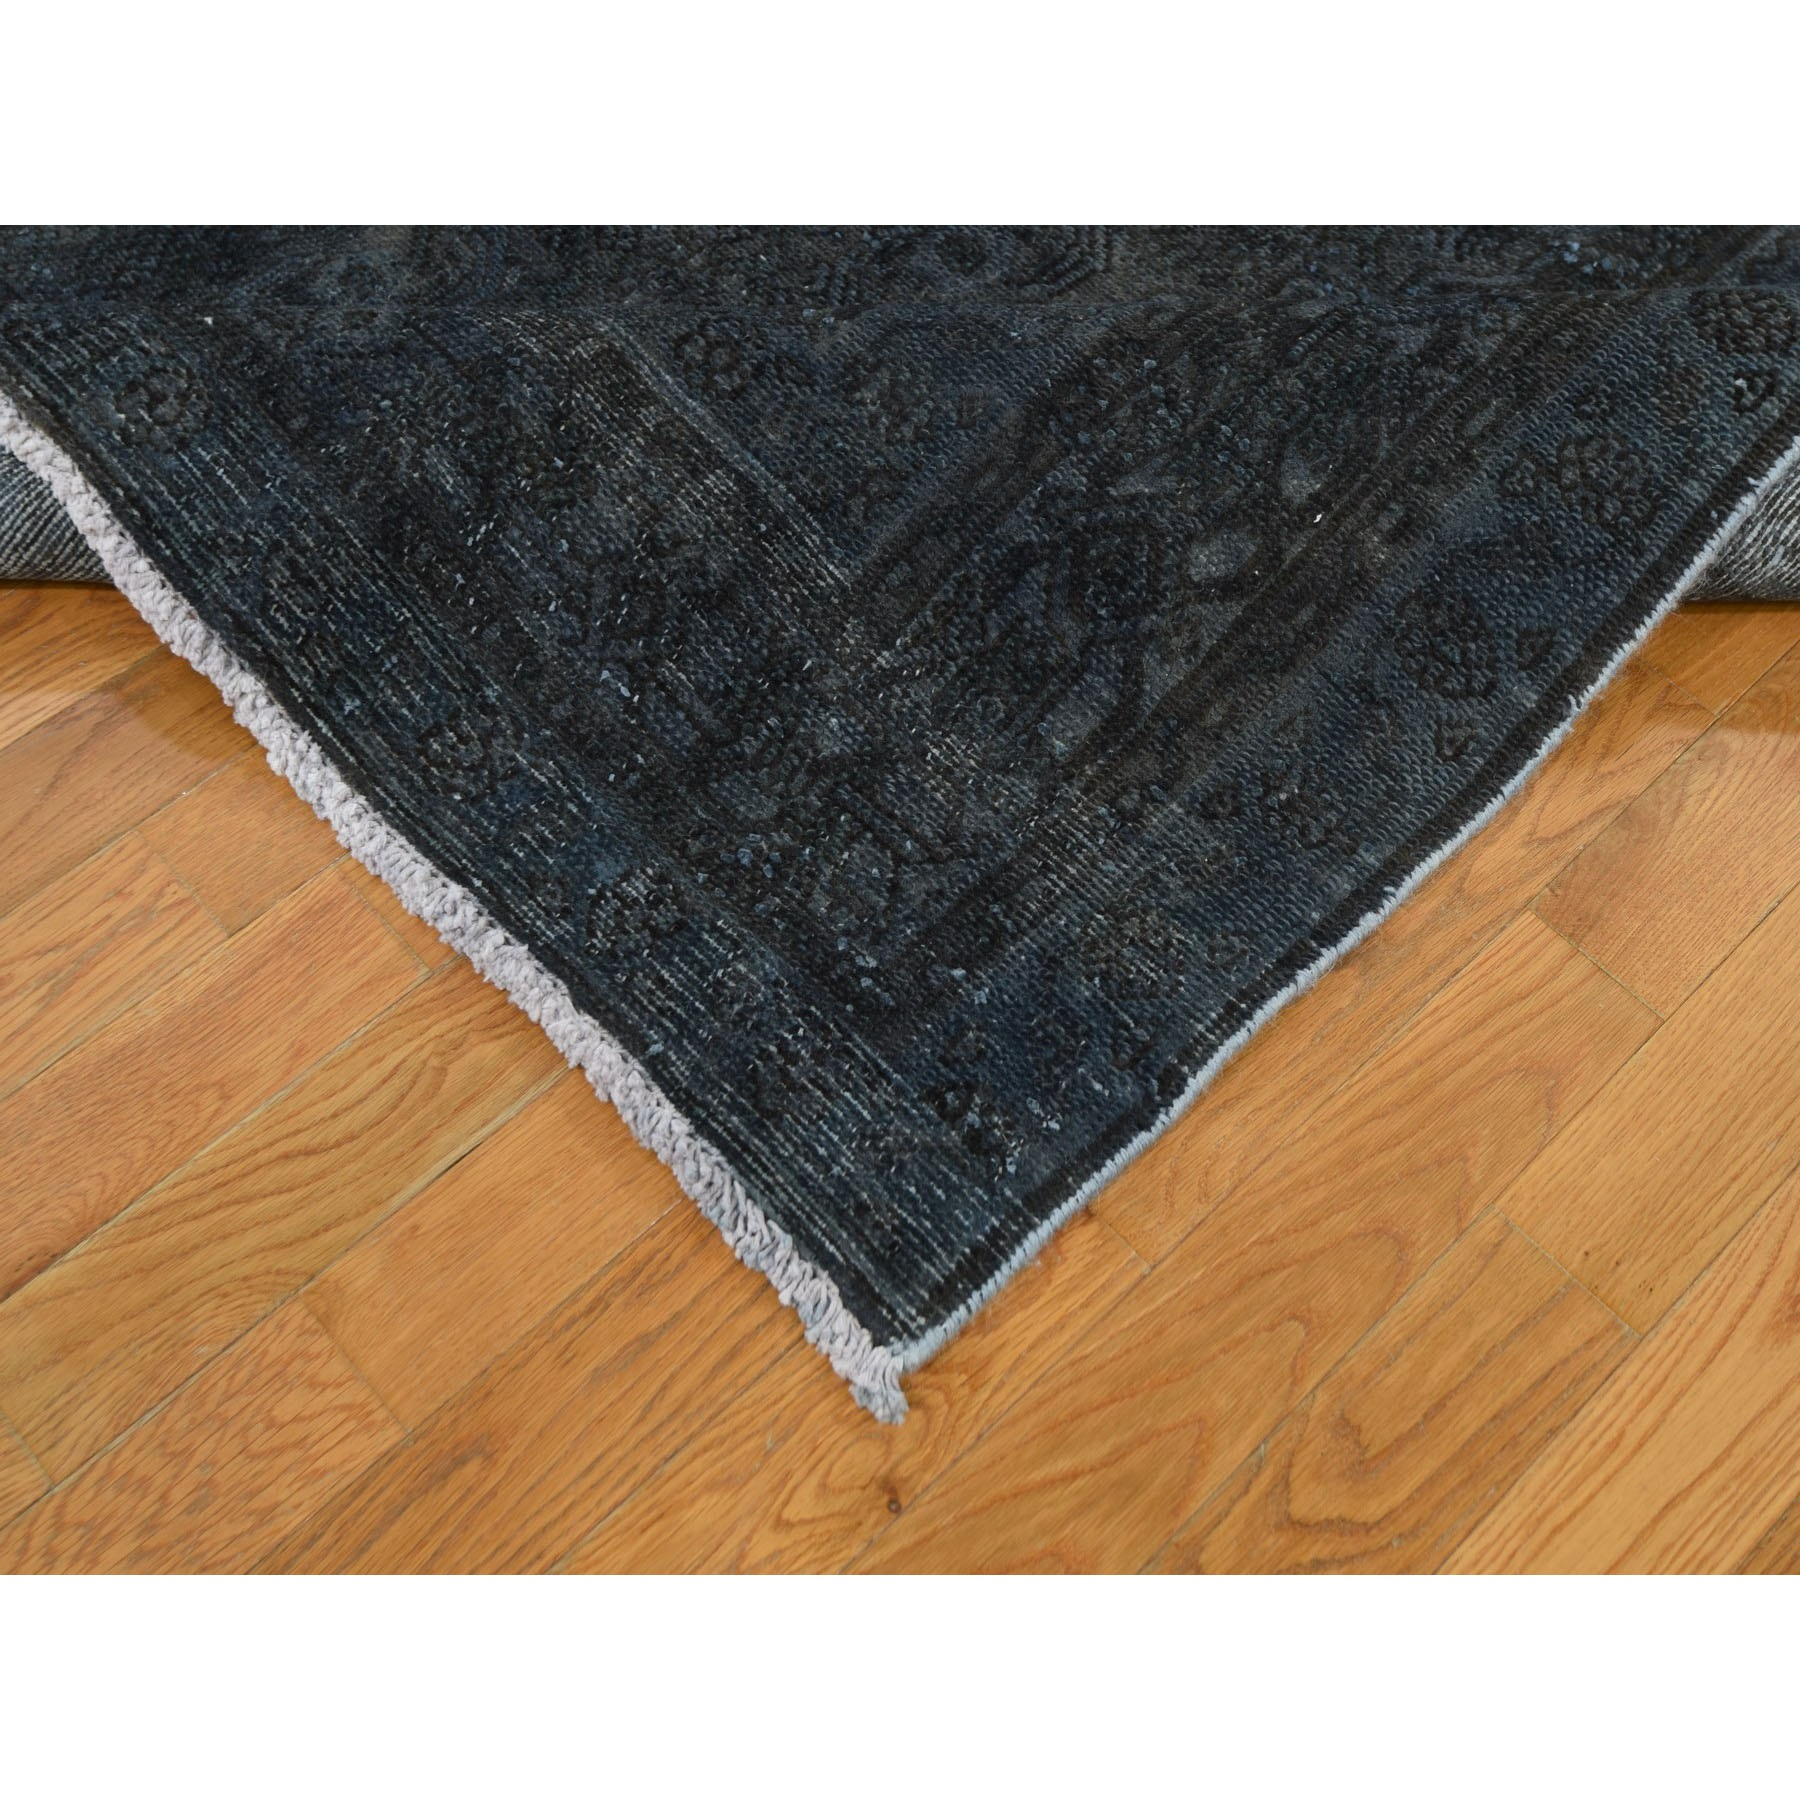 "7'x10'2"" Charcoal Gray Overdyed Tabriz Sheared Low Hand Knotted Tribal Oriental Rug"